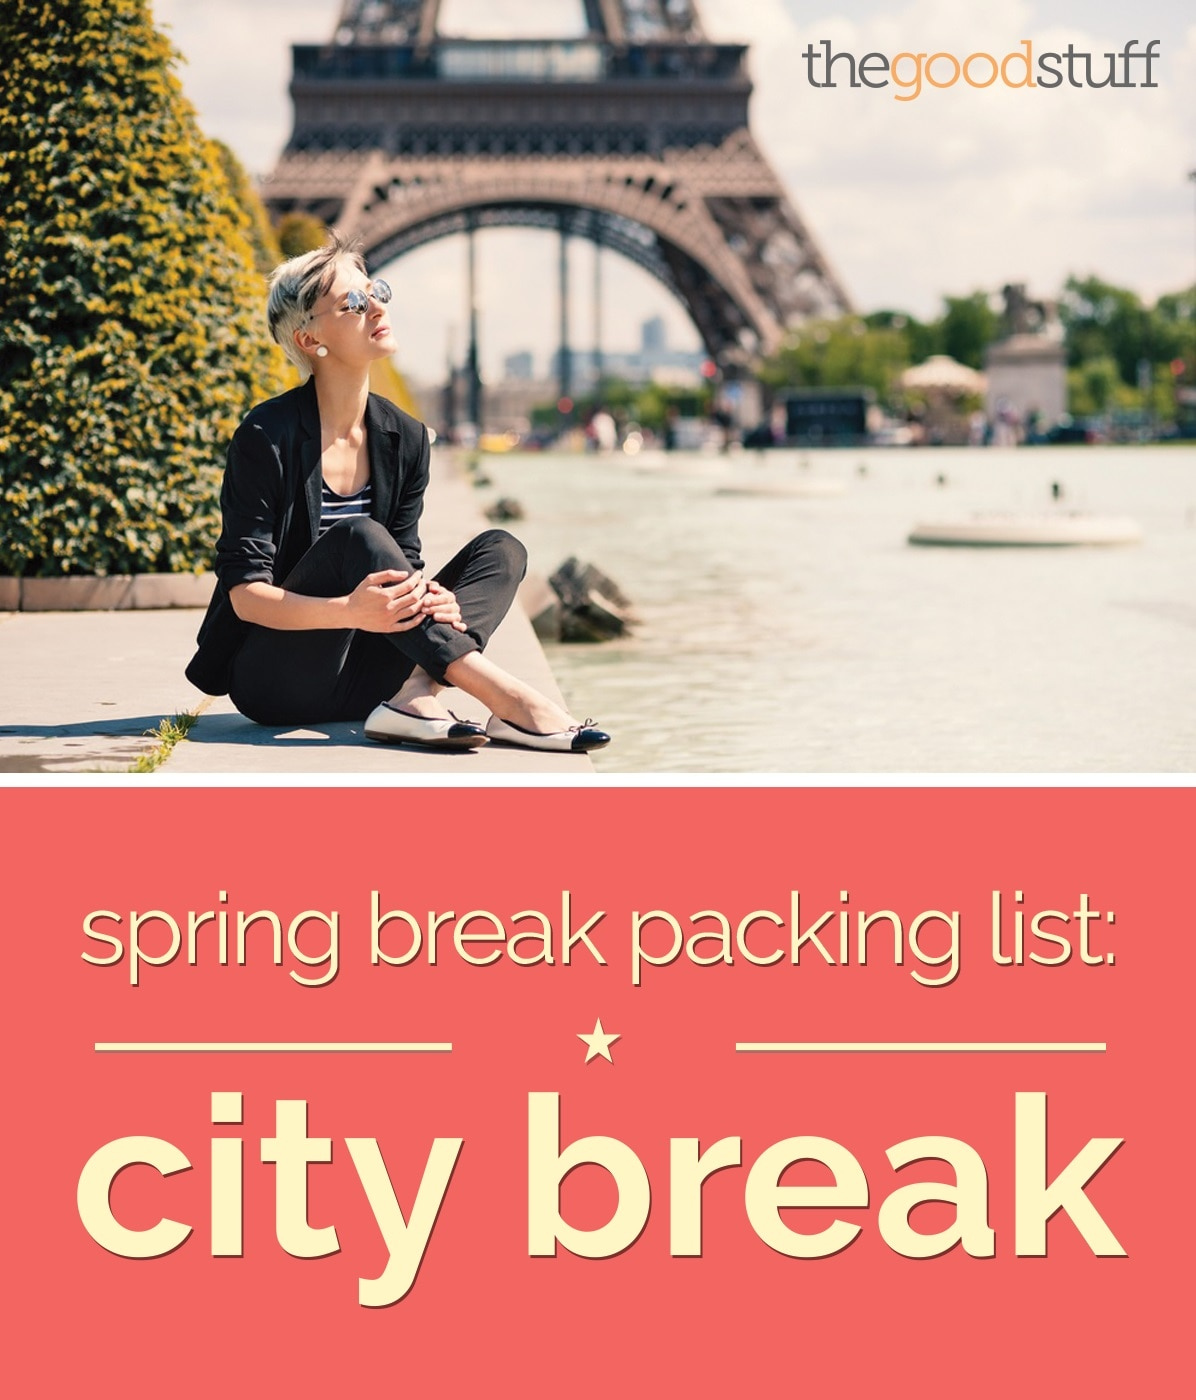 style-spring-break-packing-city-break